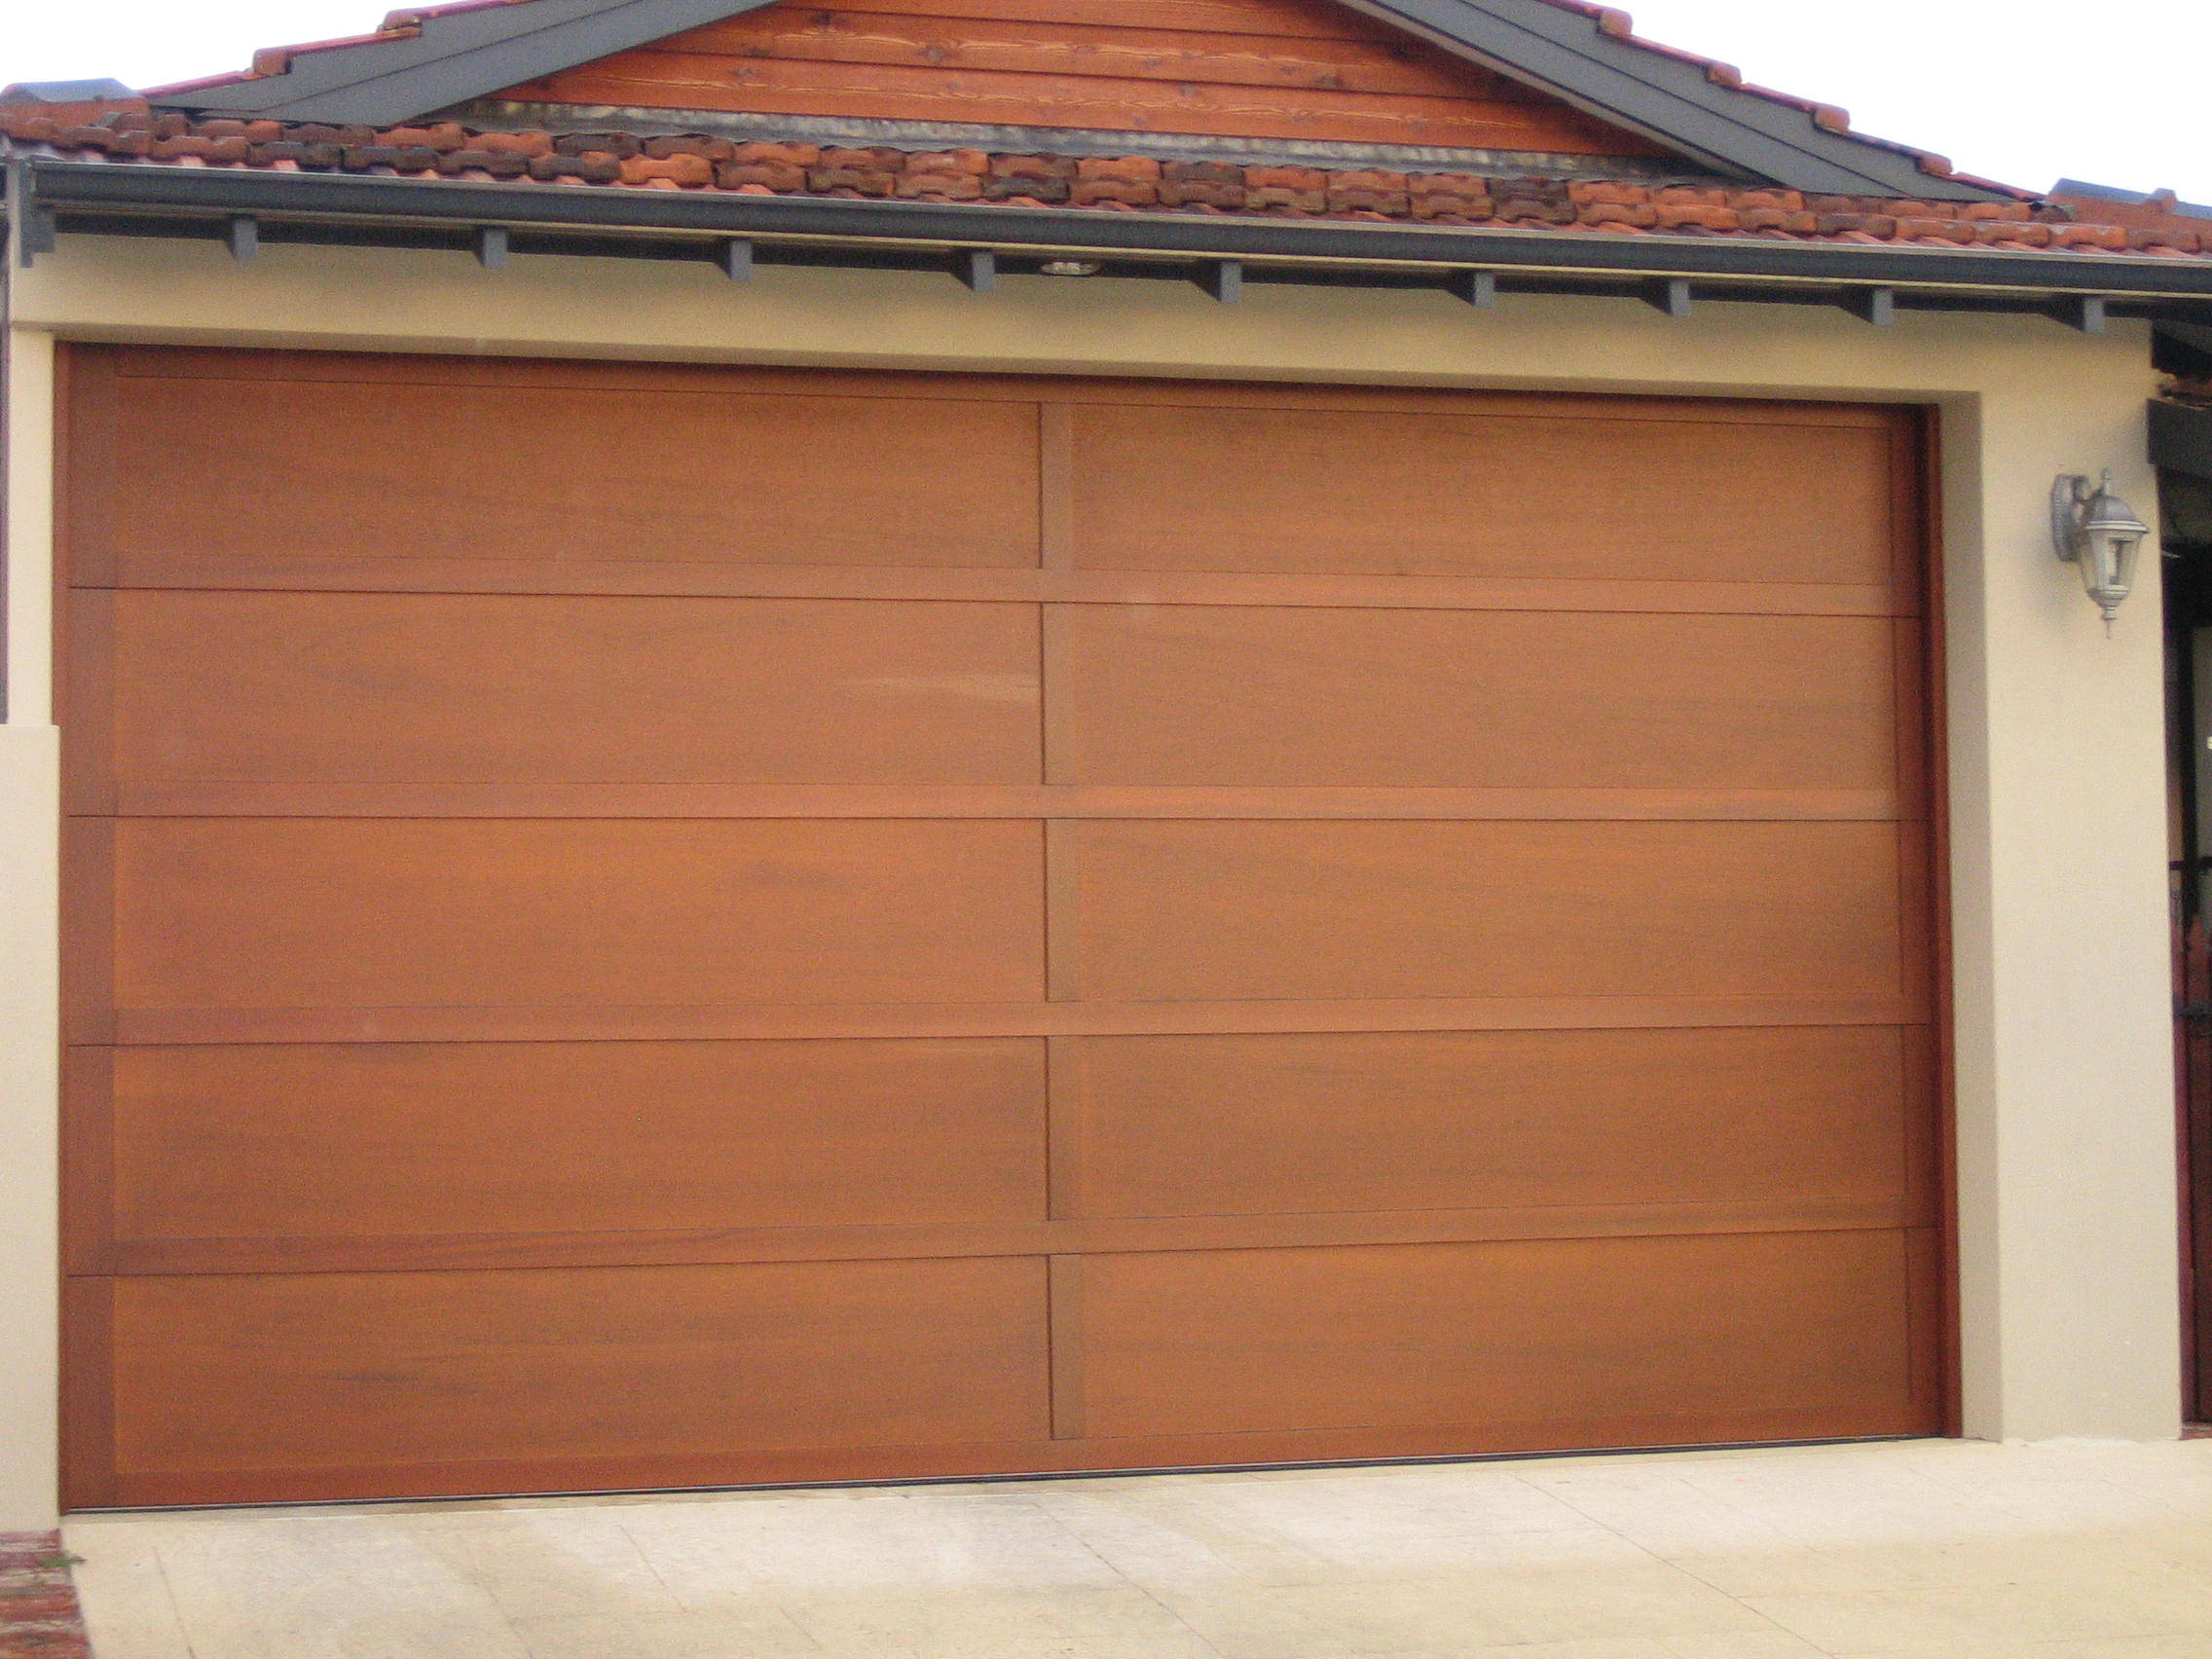 The Danmar Ply And Batten Panel Is A Natural Timber Garage Door Constructed  Of AA Grade Marine Ply Sheeting And Western Red Cedar Battens Which Are  Fixed To ...